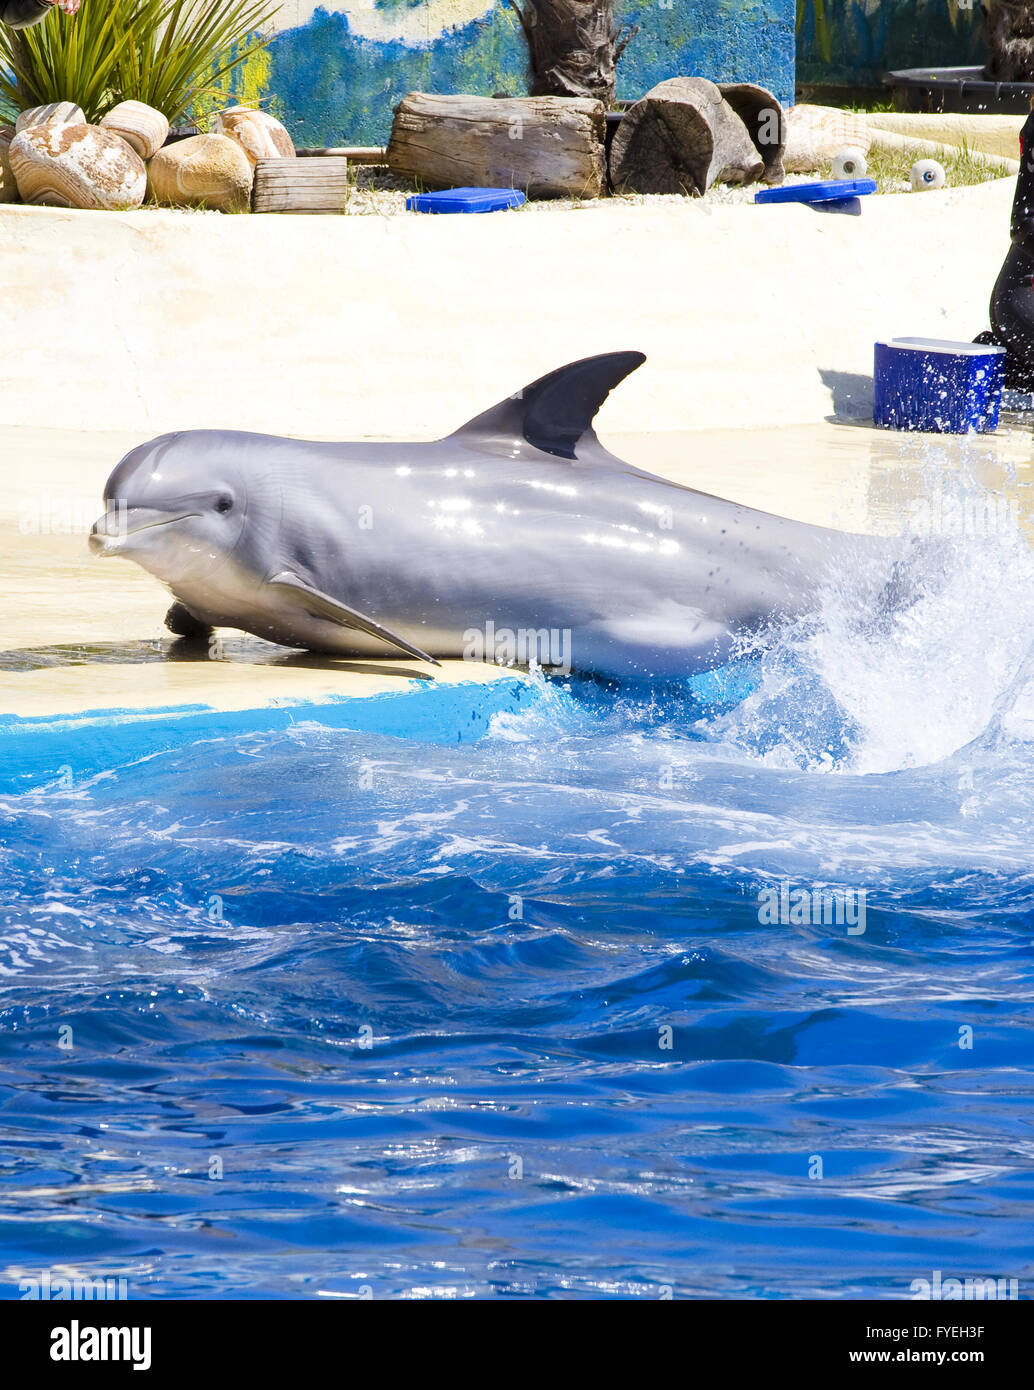 dolphin jump out of the water in sea - Stock Image